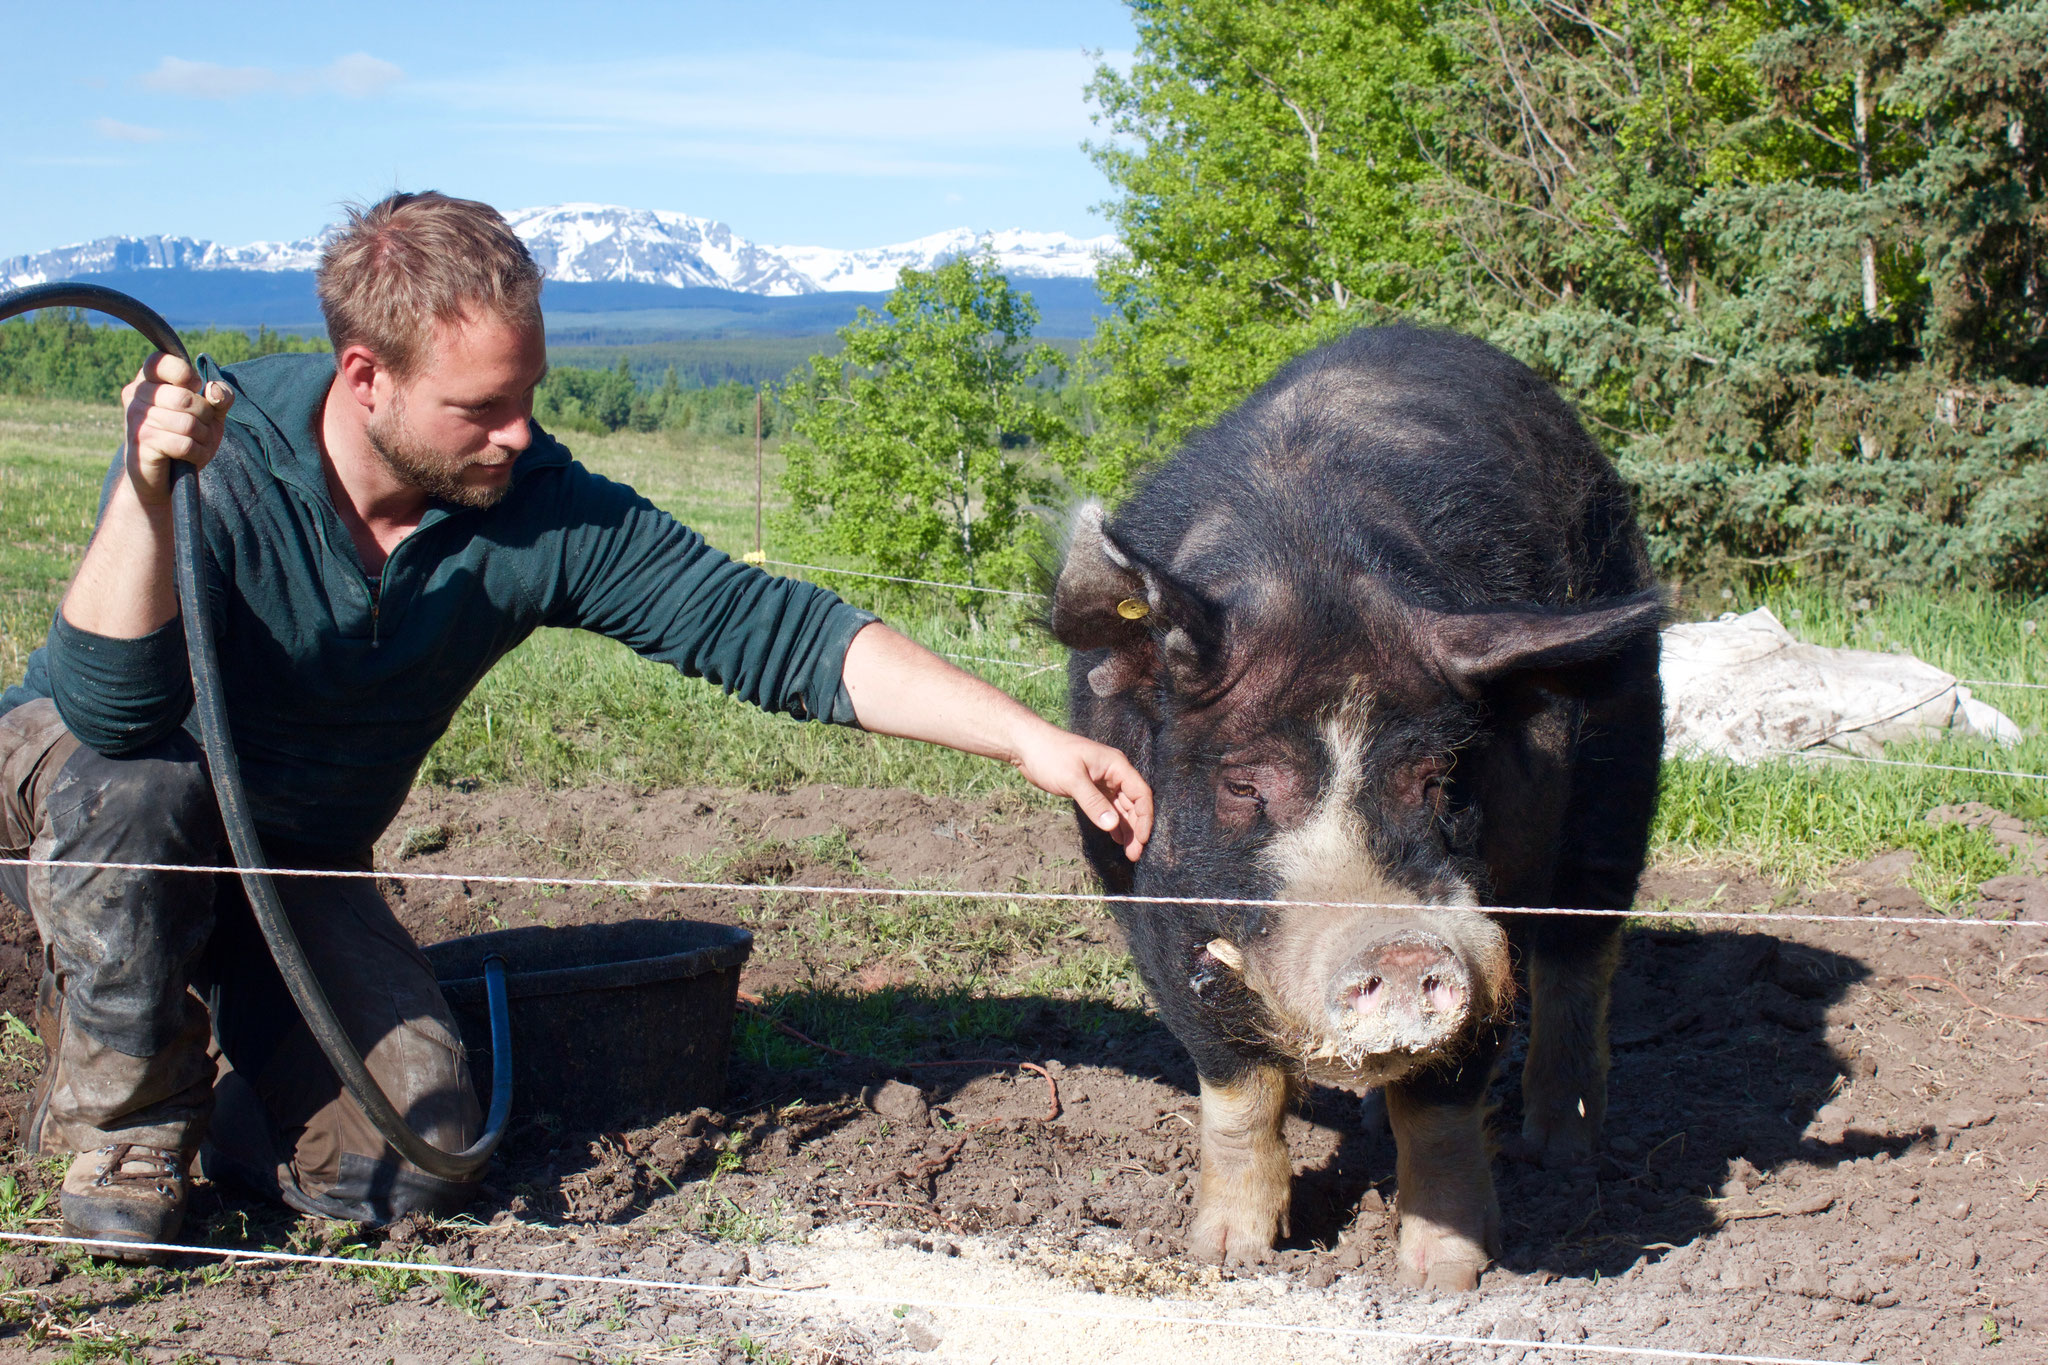 Tobi and Obi - the most gentle pig on earth (expect our wild boar Odin ;))